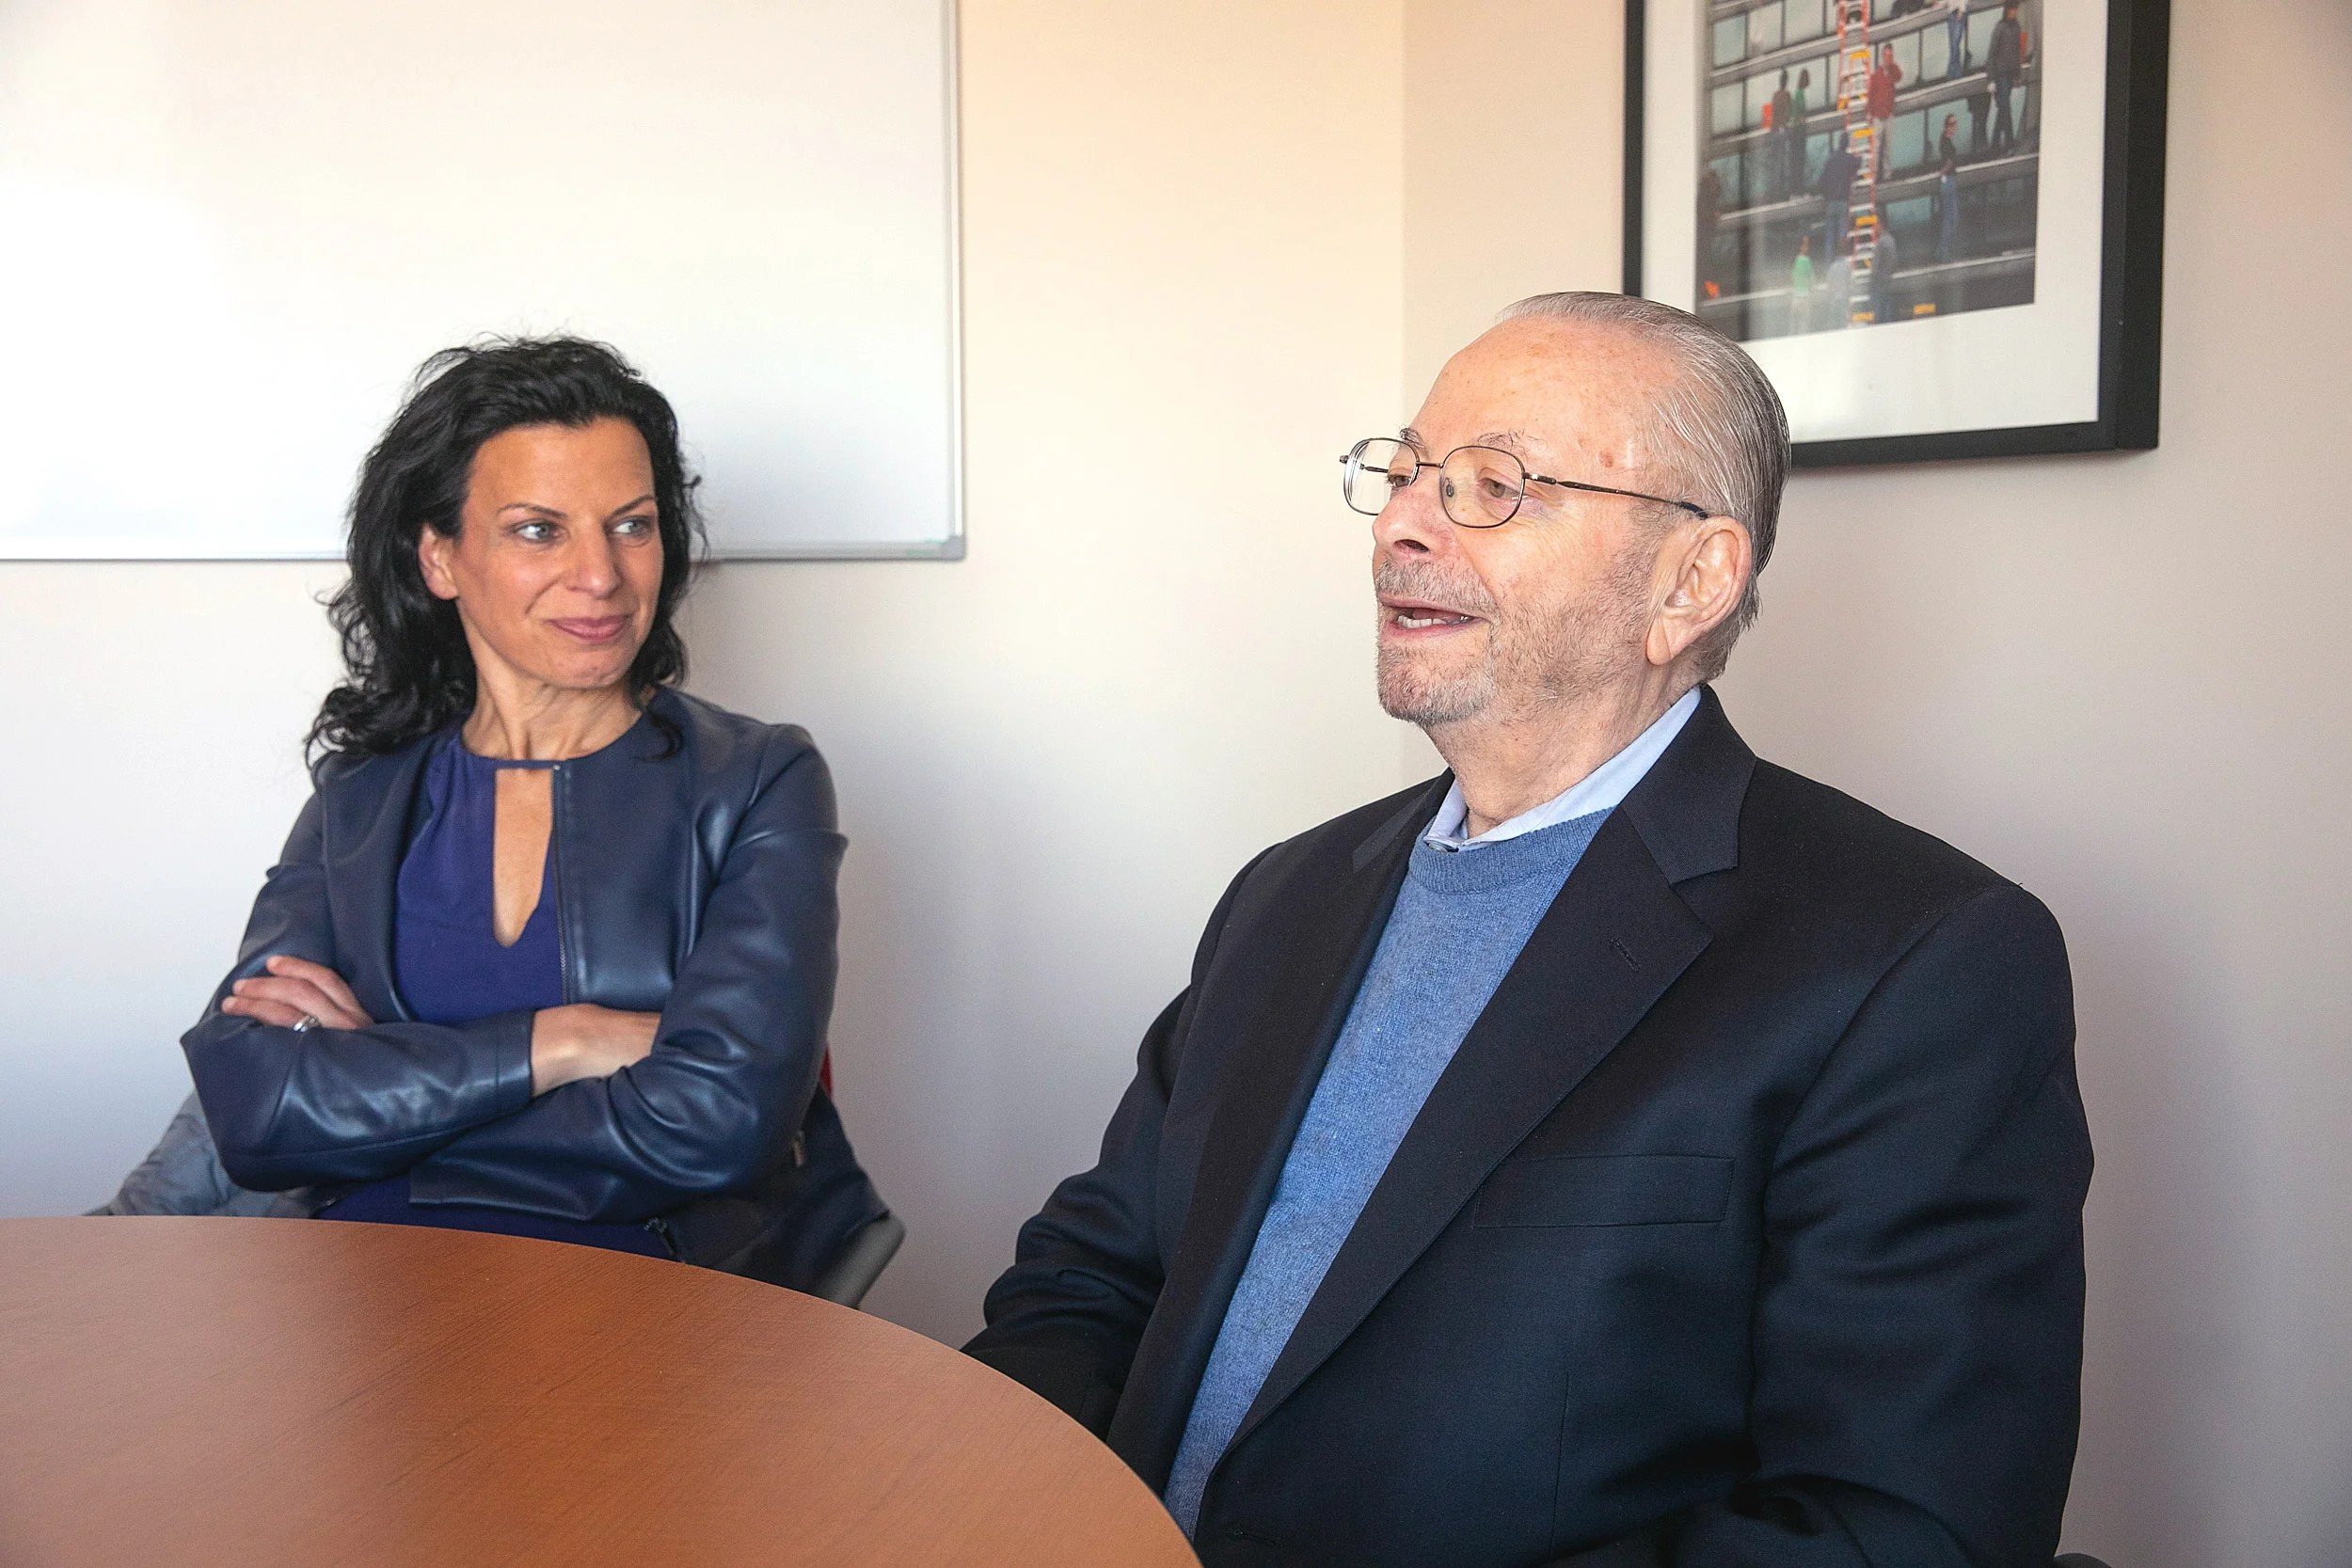 Harvard's Barry Bloom and Juliette Kayyem discuss measles outbreak